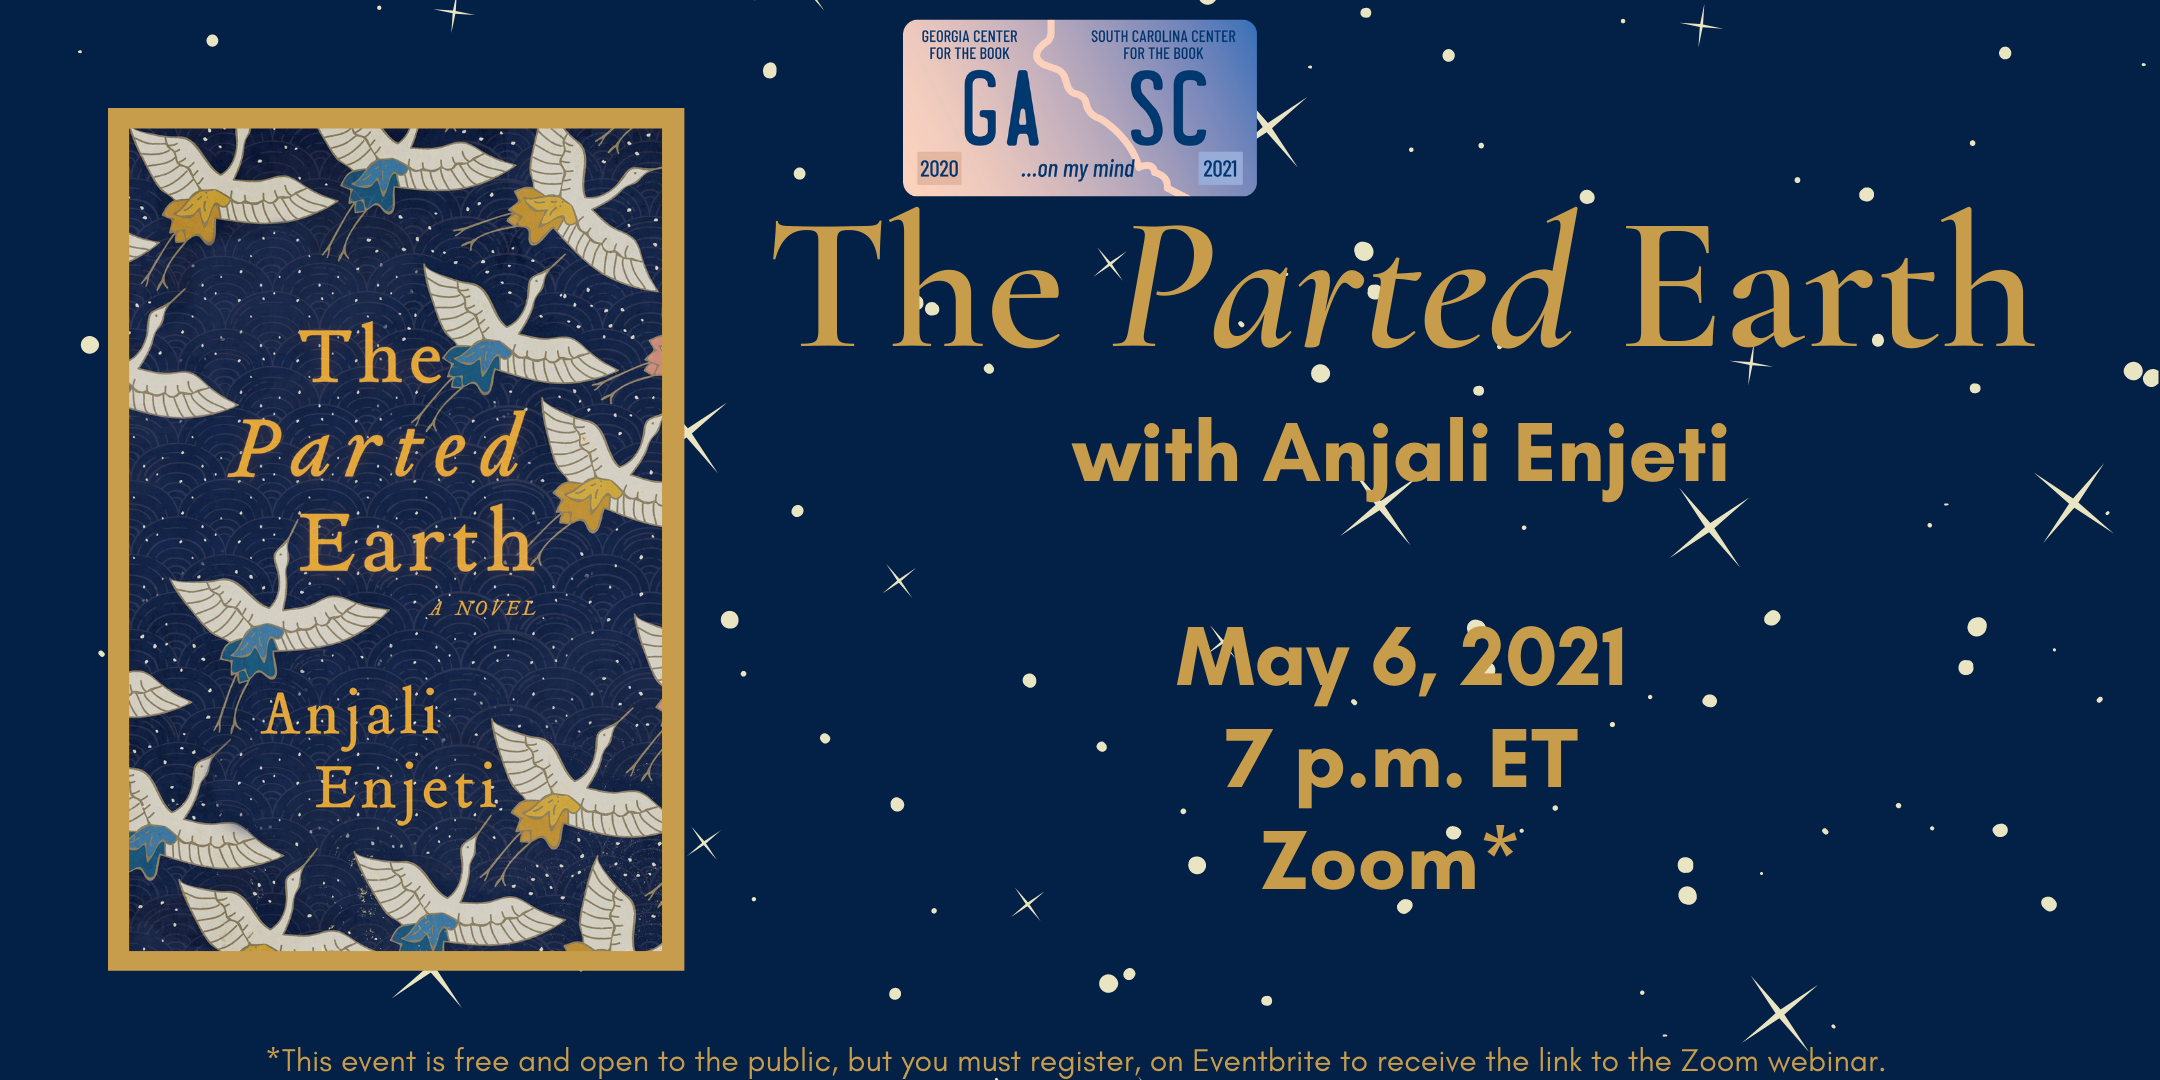 "The background of the image is midnight blue with yellow stars. Superimposed on the left side the book cover for The Parted Earth by Anjali Enjeti. The right side of the image reads ""The Parted Earth, with Anjali Enjeti May 6, 2021 at 7pm on Zoom"""